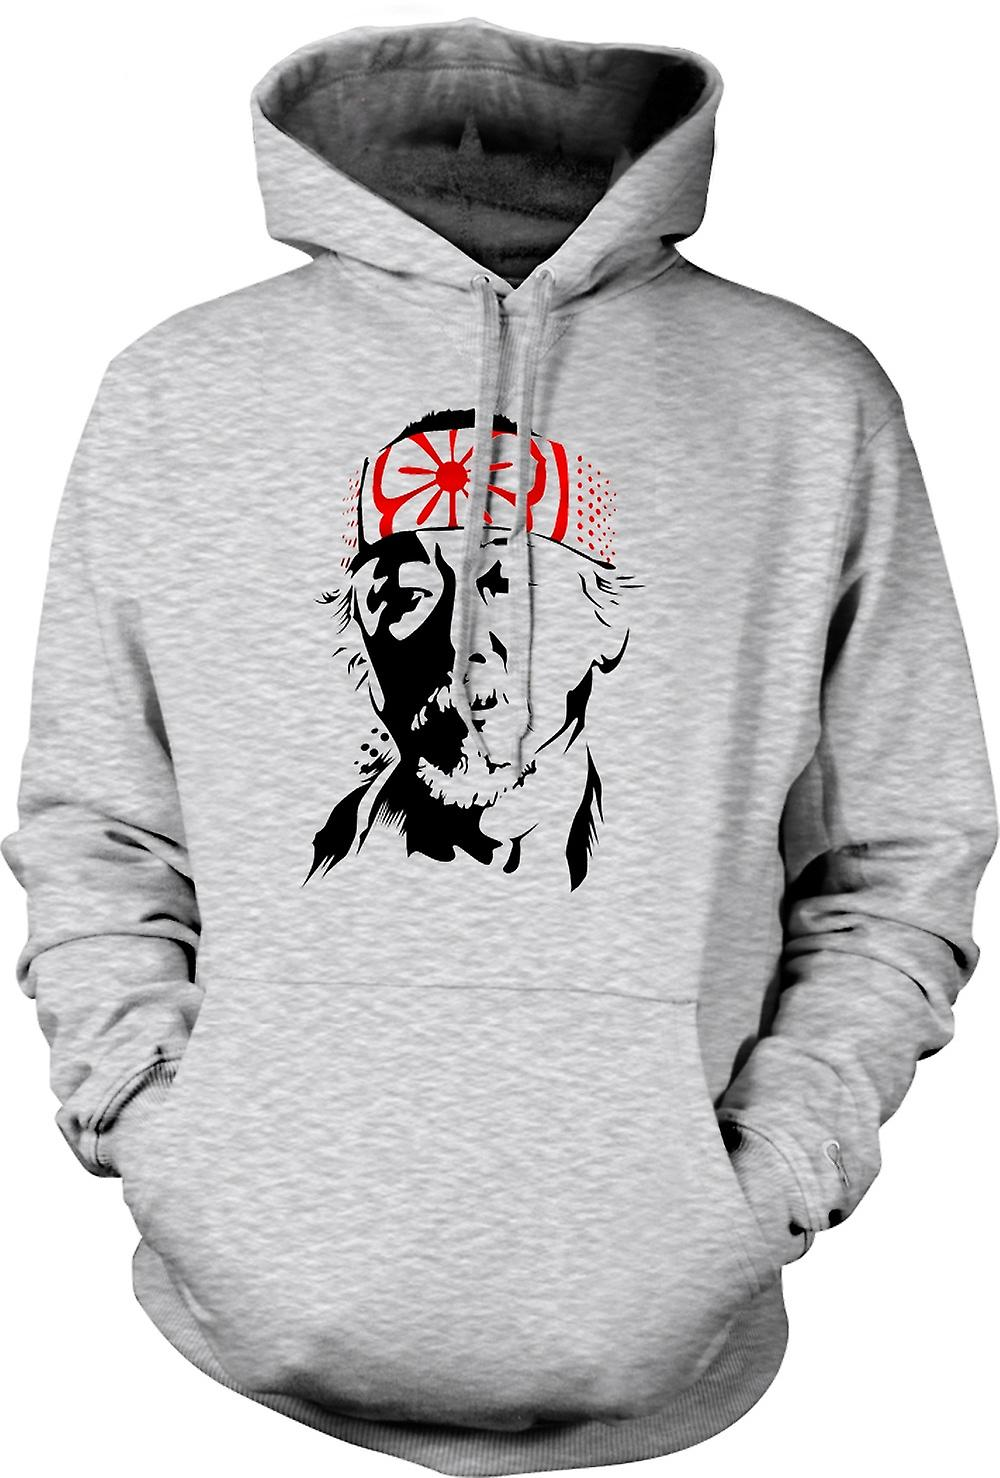 Mens Hoodie - Karate Kid Mr Miyagi - Portrait